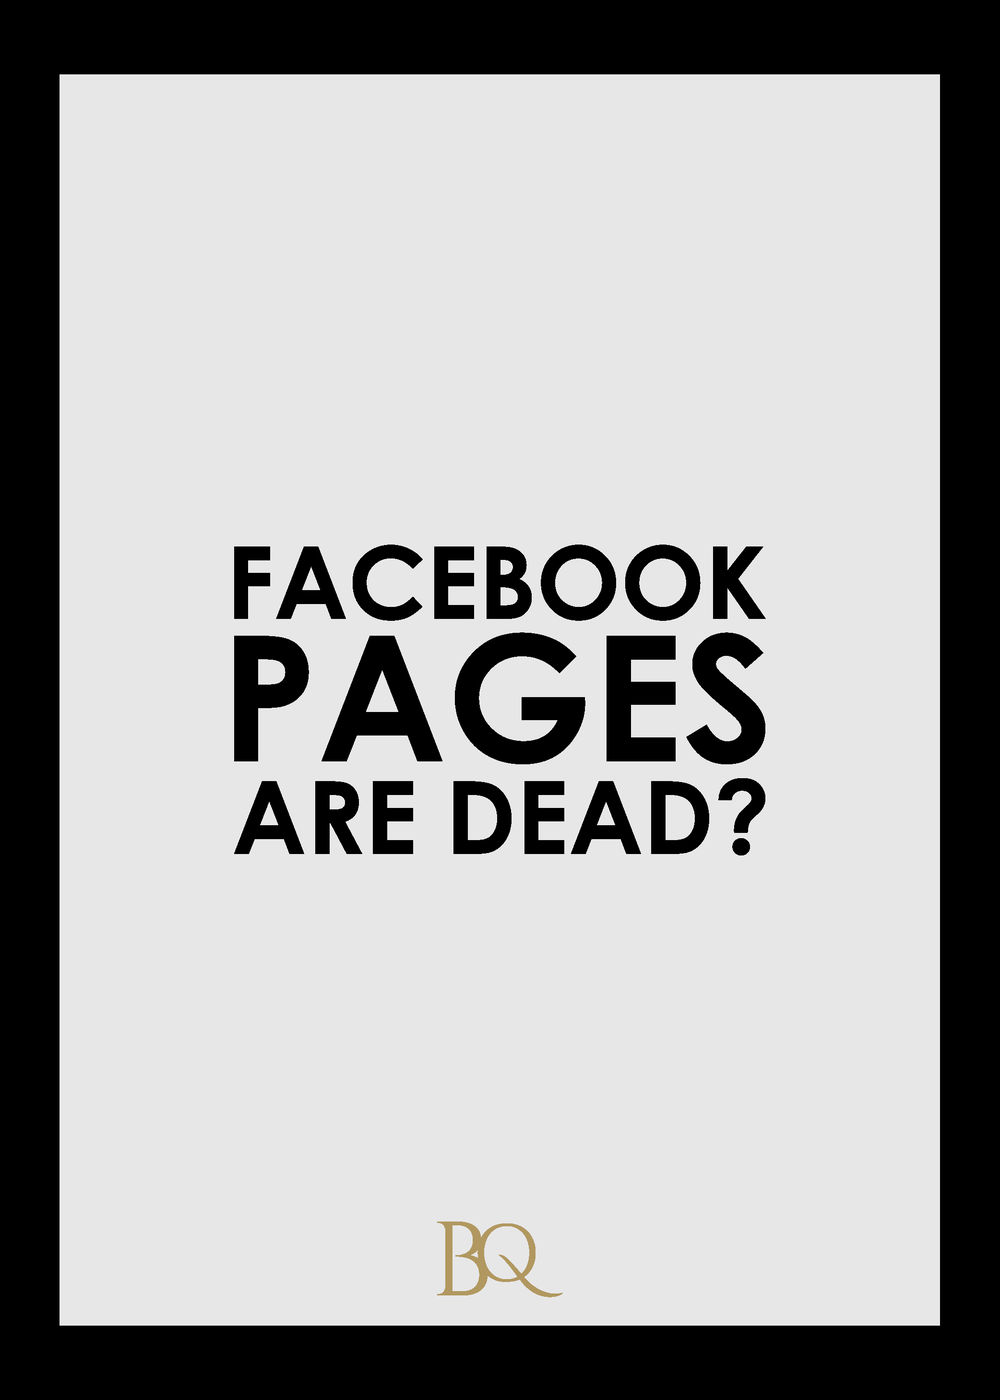 Facebook Pages Are Dead The Branding Queen cdb design studio